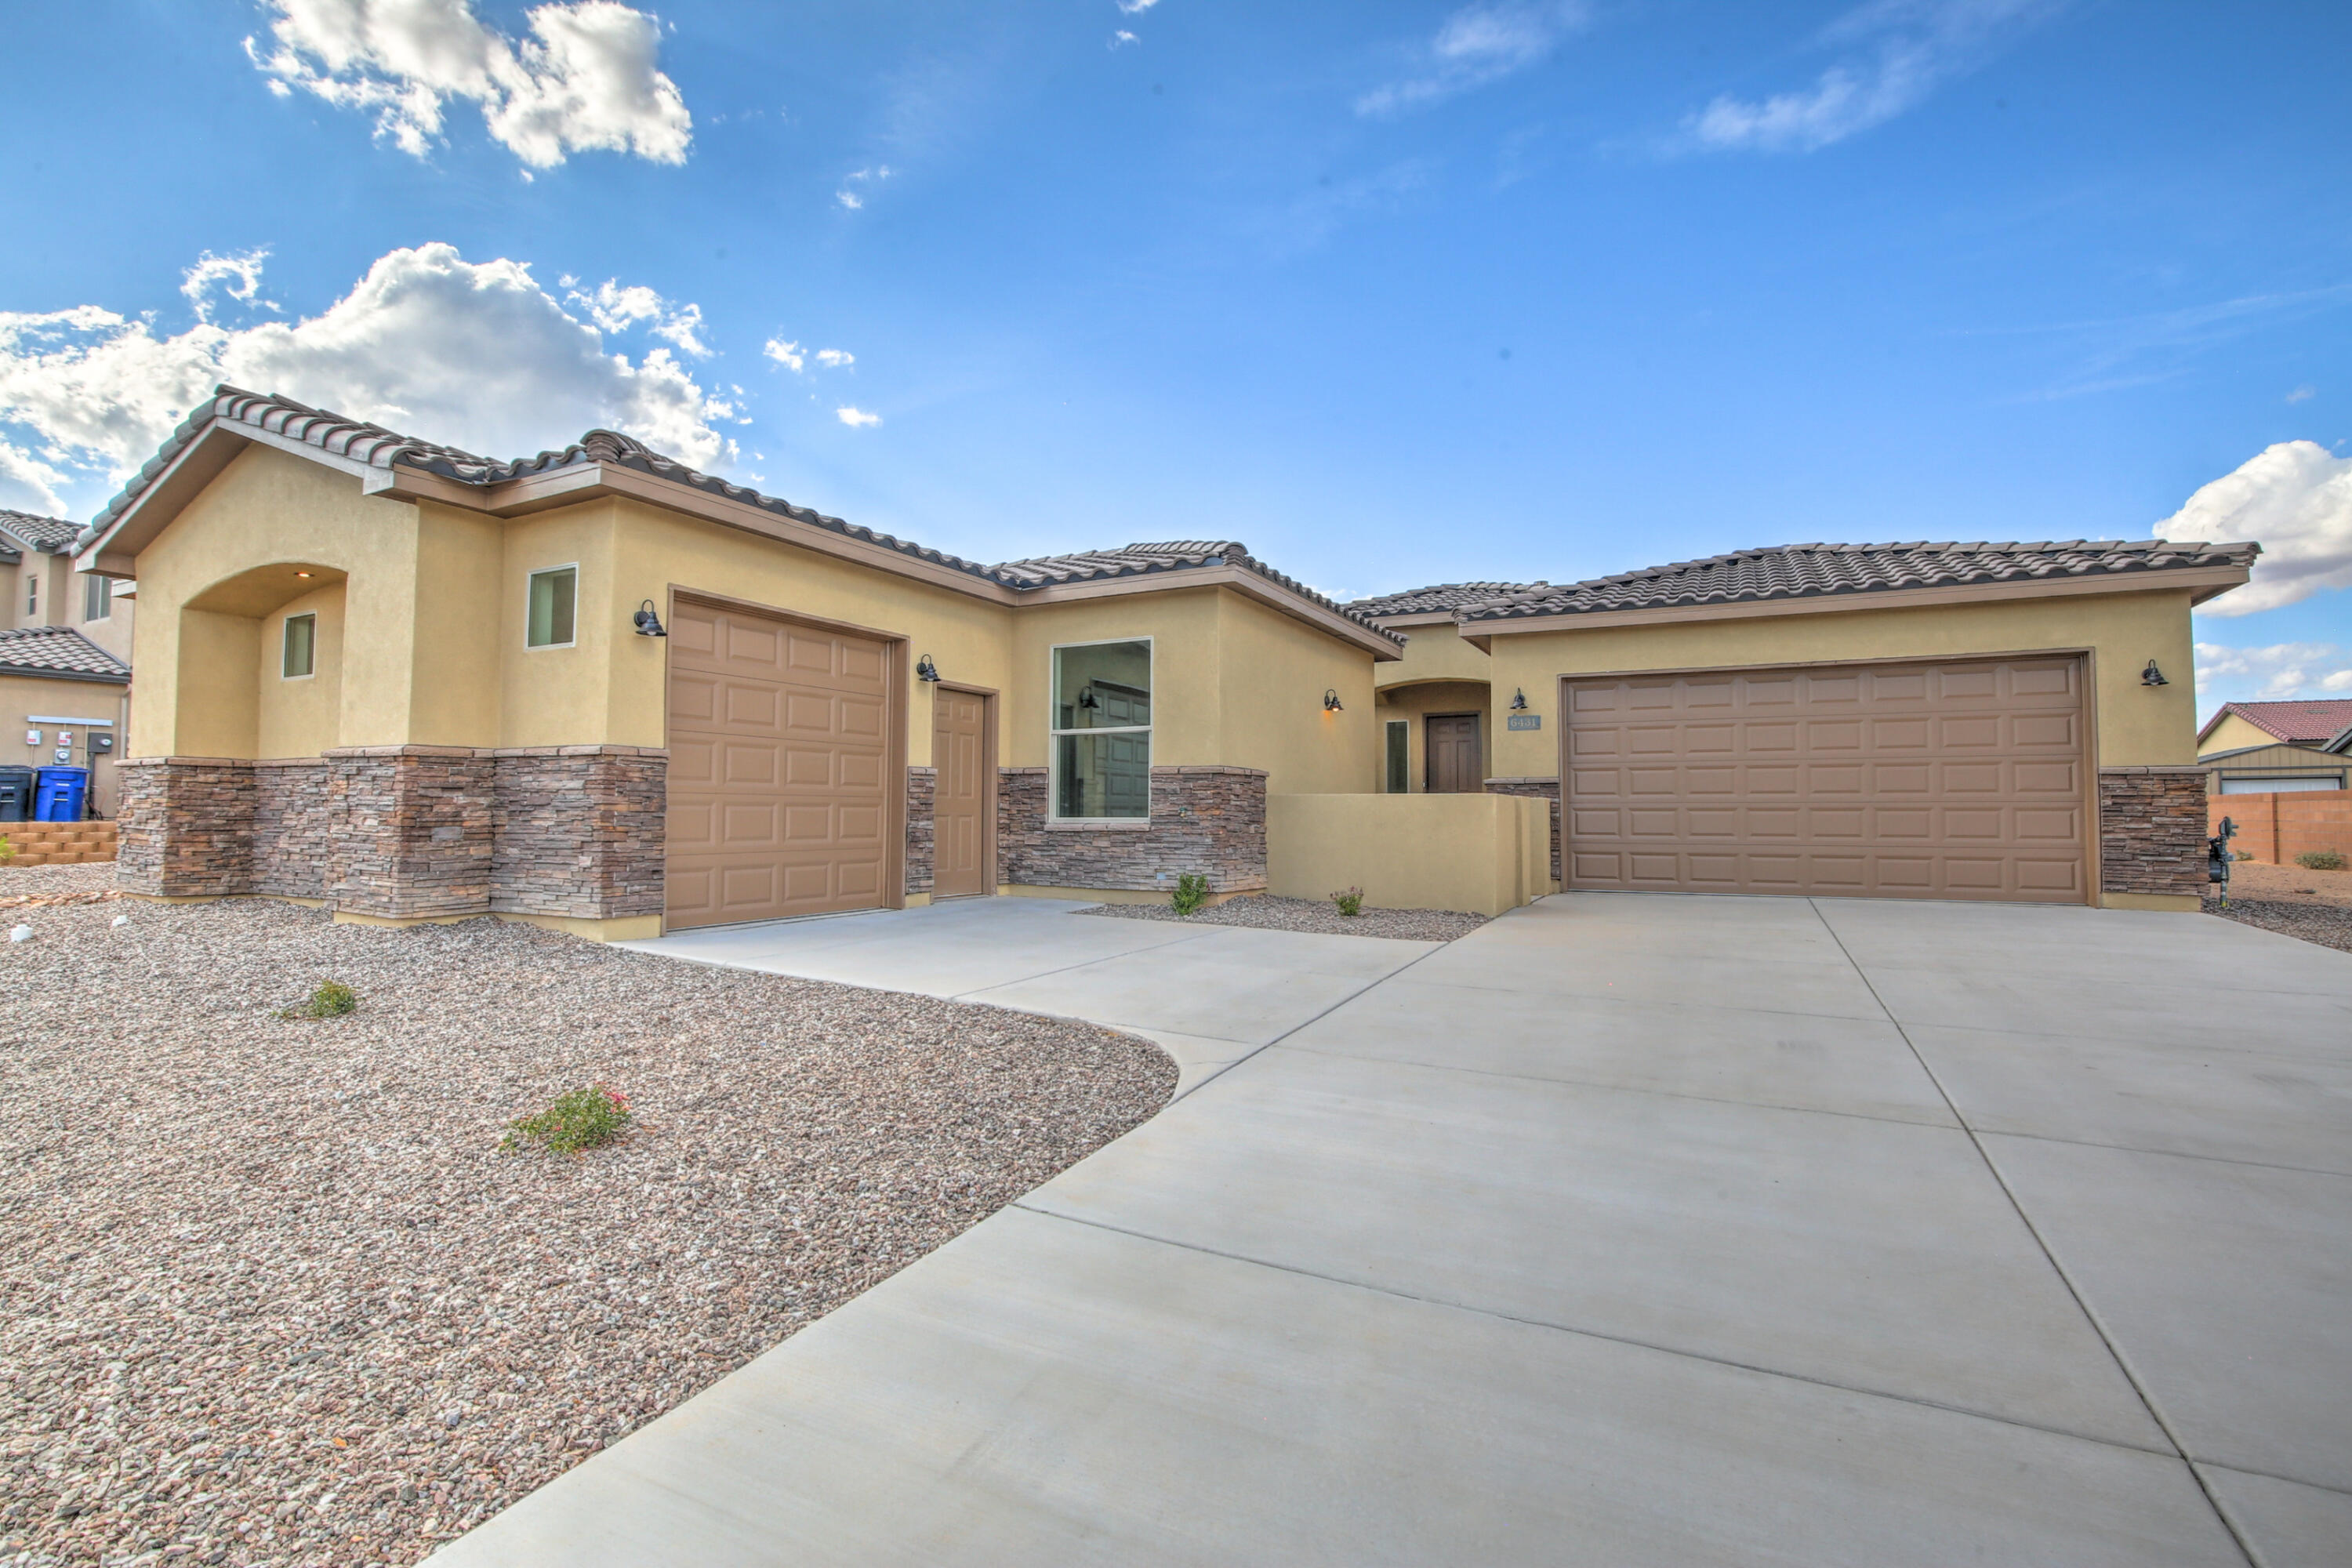 Newly Completed new construction in the heart of the Petroglyphs. This open floor plan is four bedroom, two and a half bath, with a three car garage.  Home is currently under construction.  It will come with a dishwasher, refrigerator, microwave, and gas range stove.